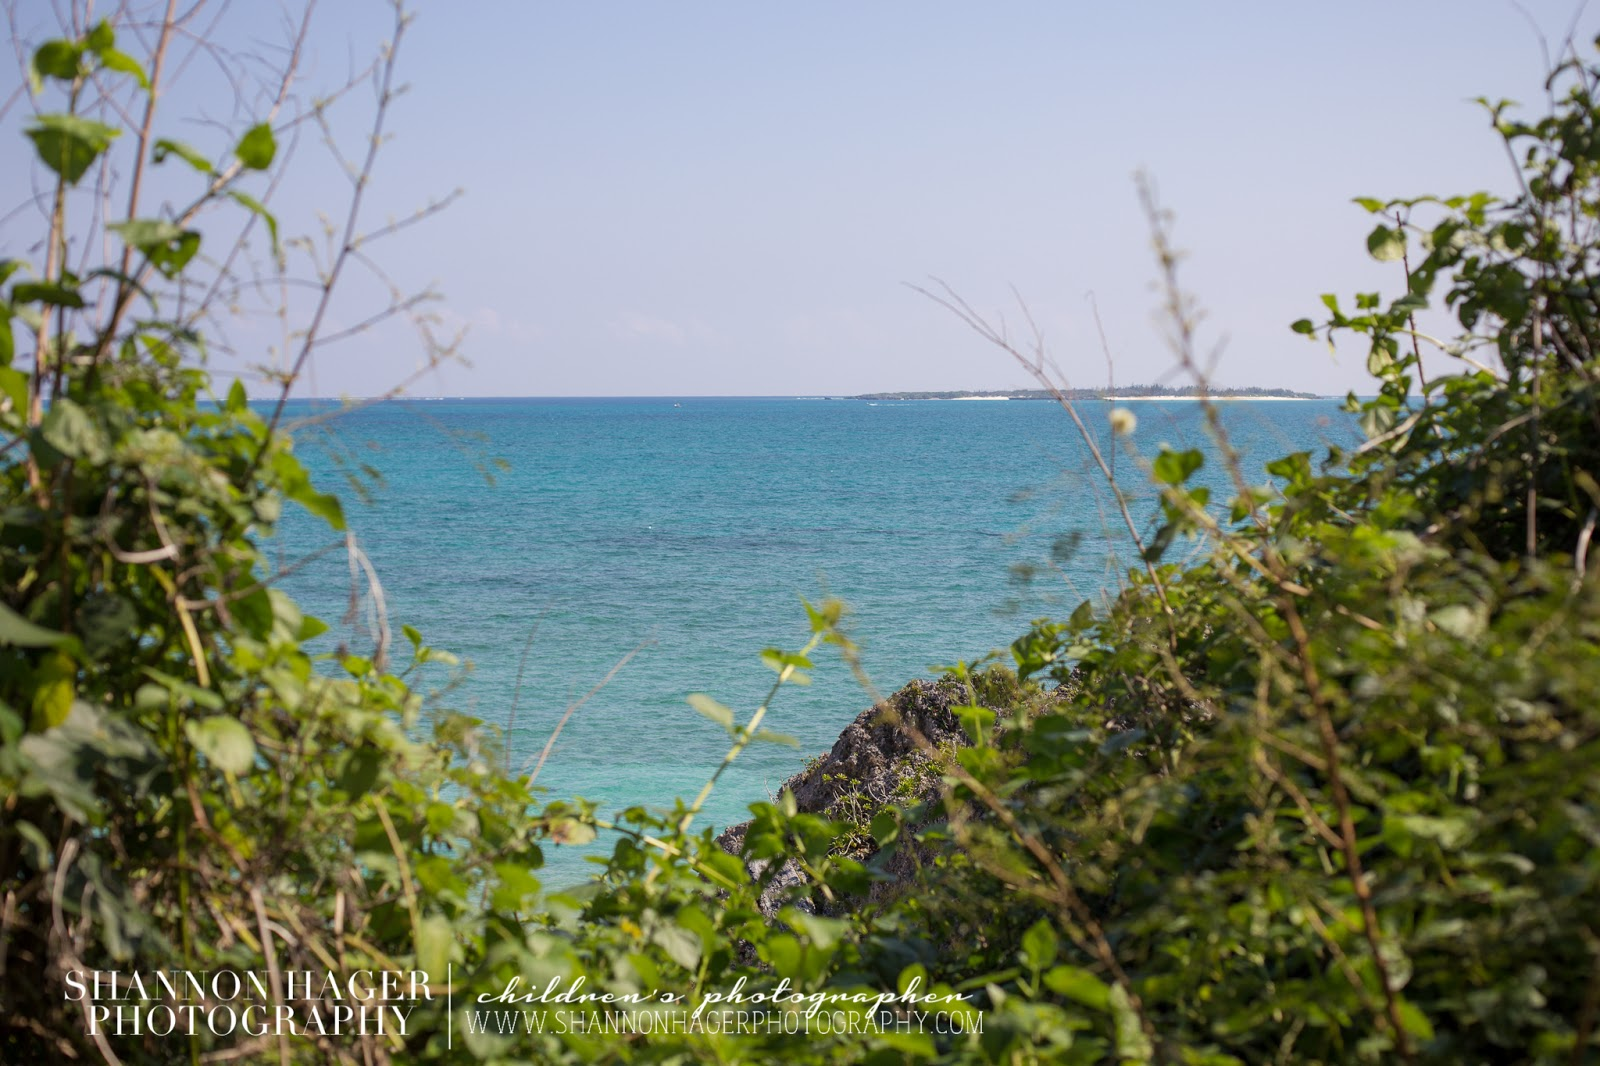 Okinawa Photography by Shannon Hager Photography